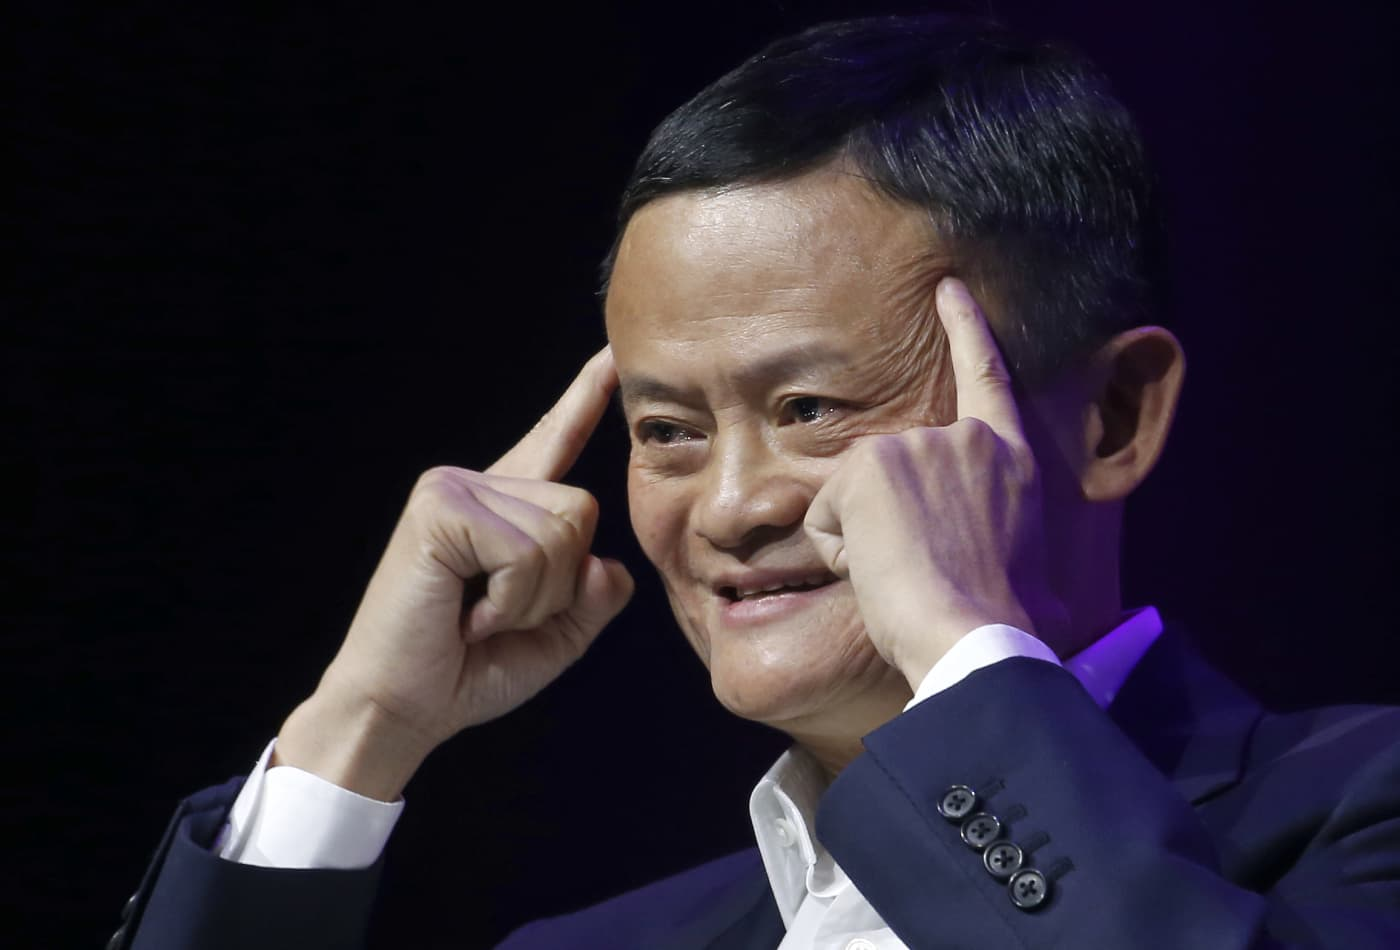 Jack Ma focuses on his sleep routine to cope with stress